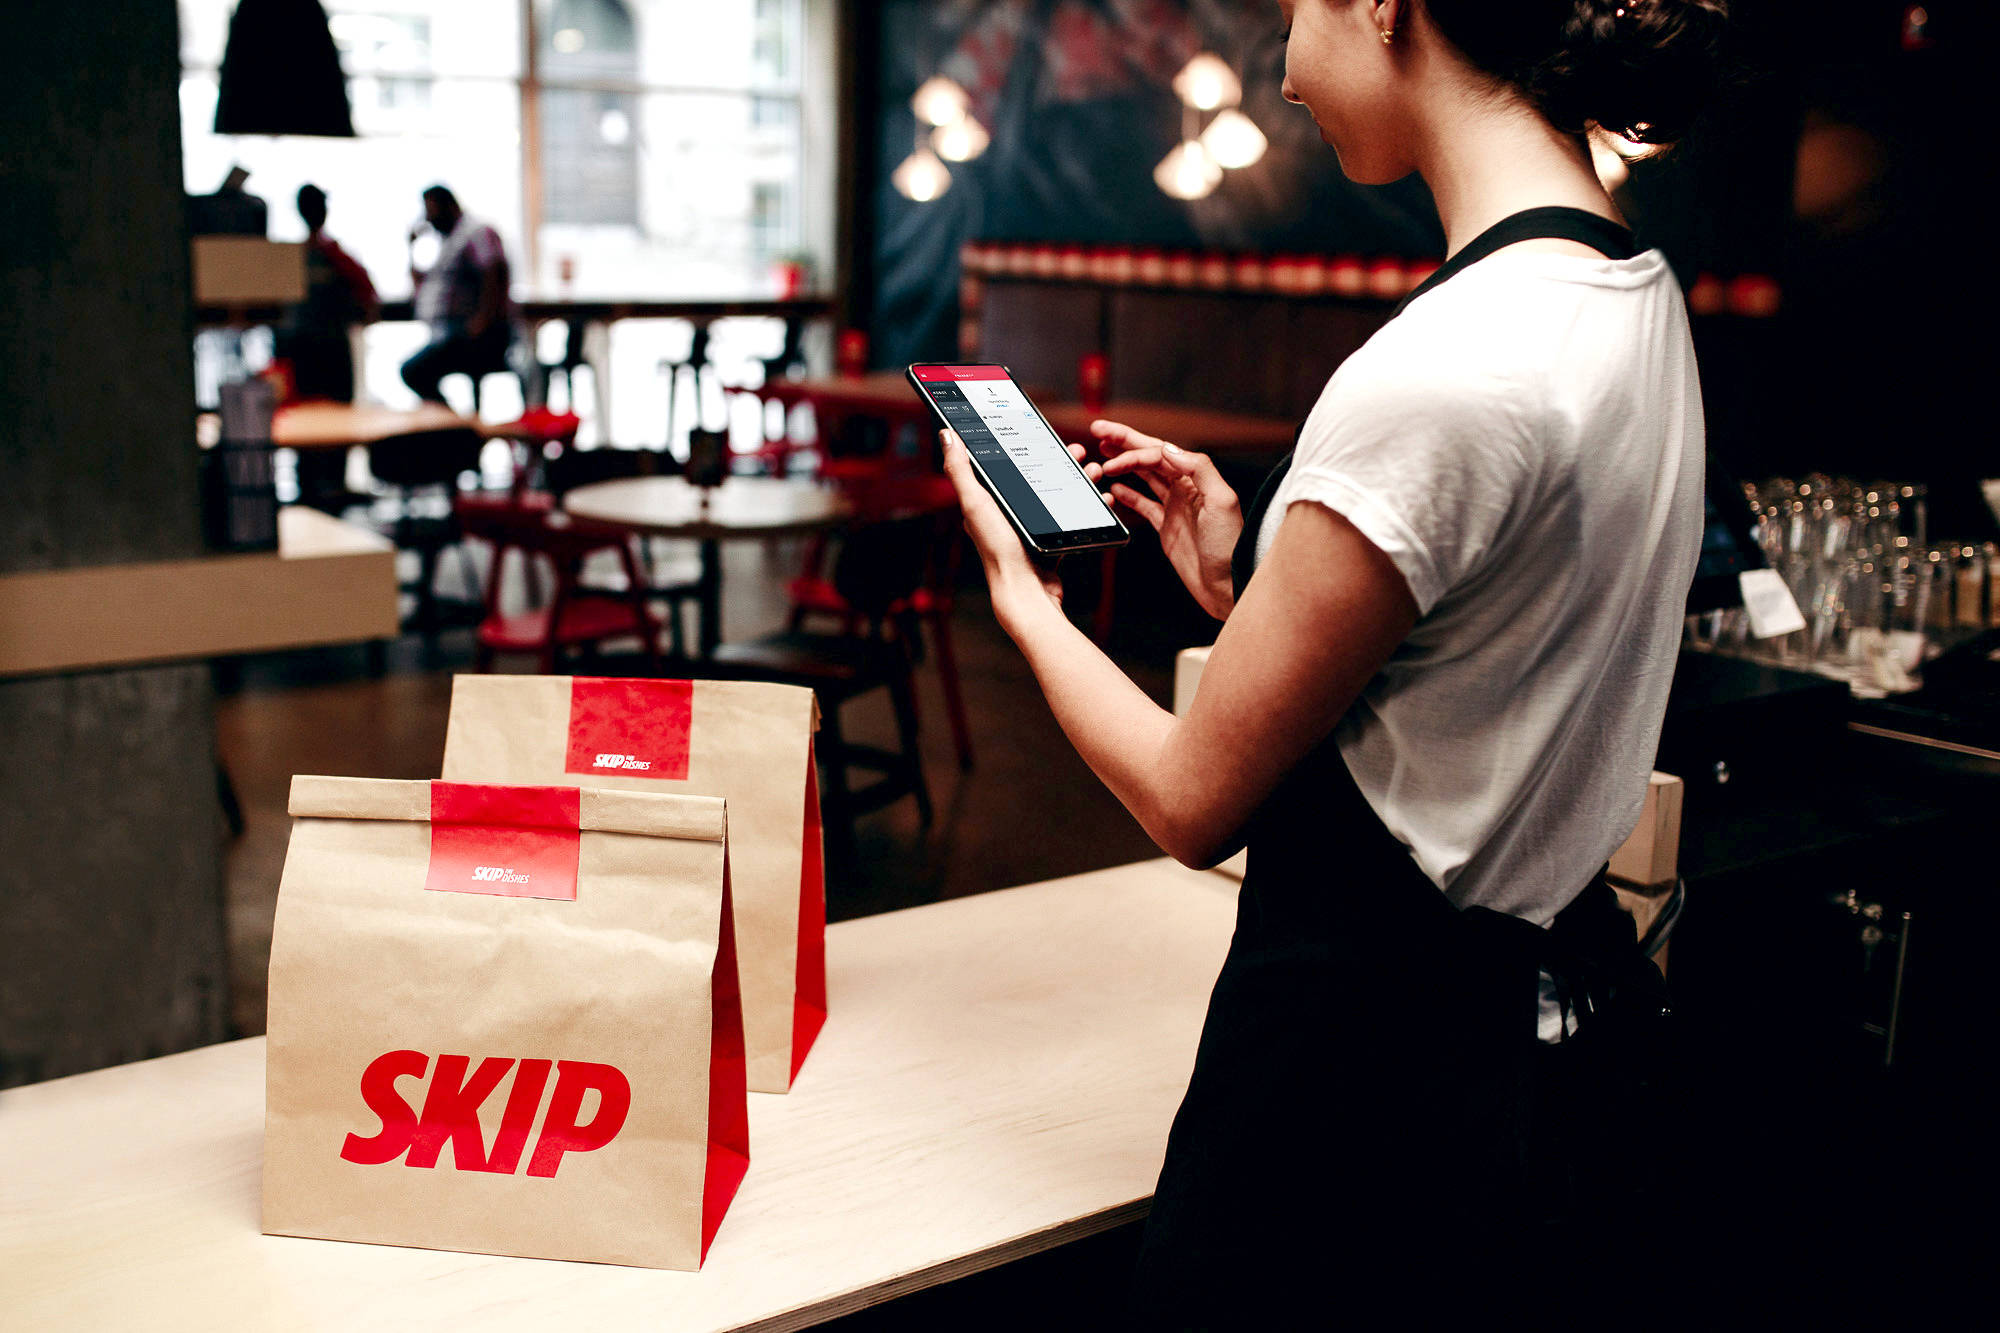 Skip The Dishes, Doordash, Uber Eats and other delivery services have grown their business significantly as restaurants have adapted to COVID-19 restrictions. (Skip The Dishes photo)